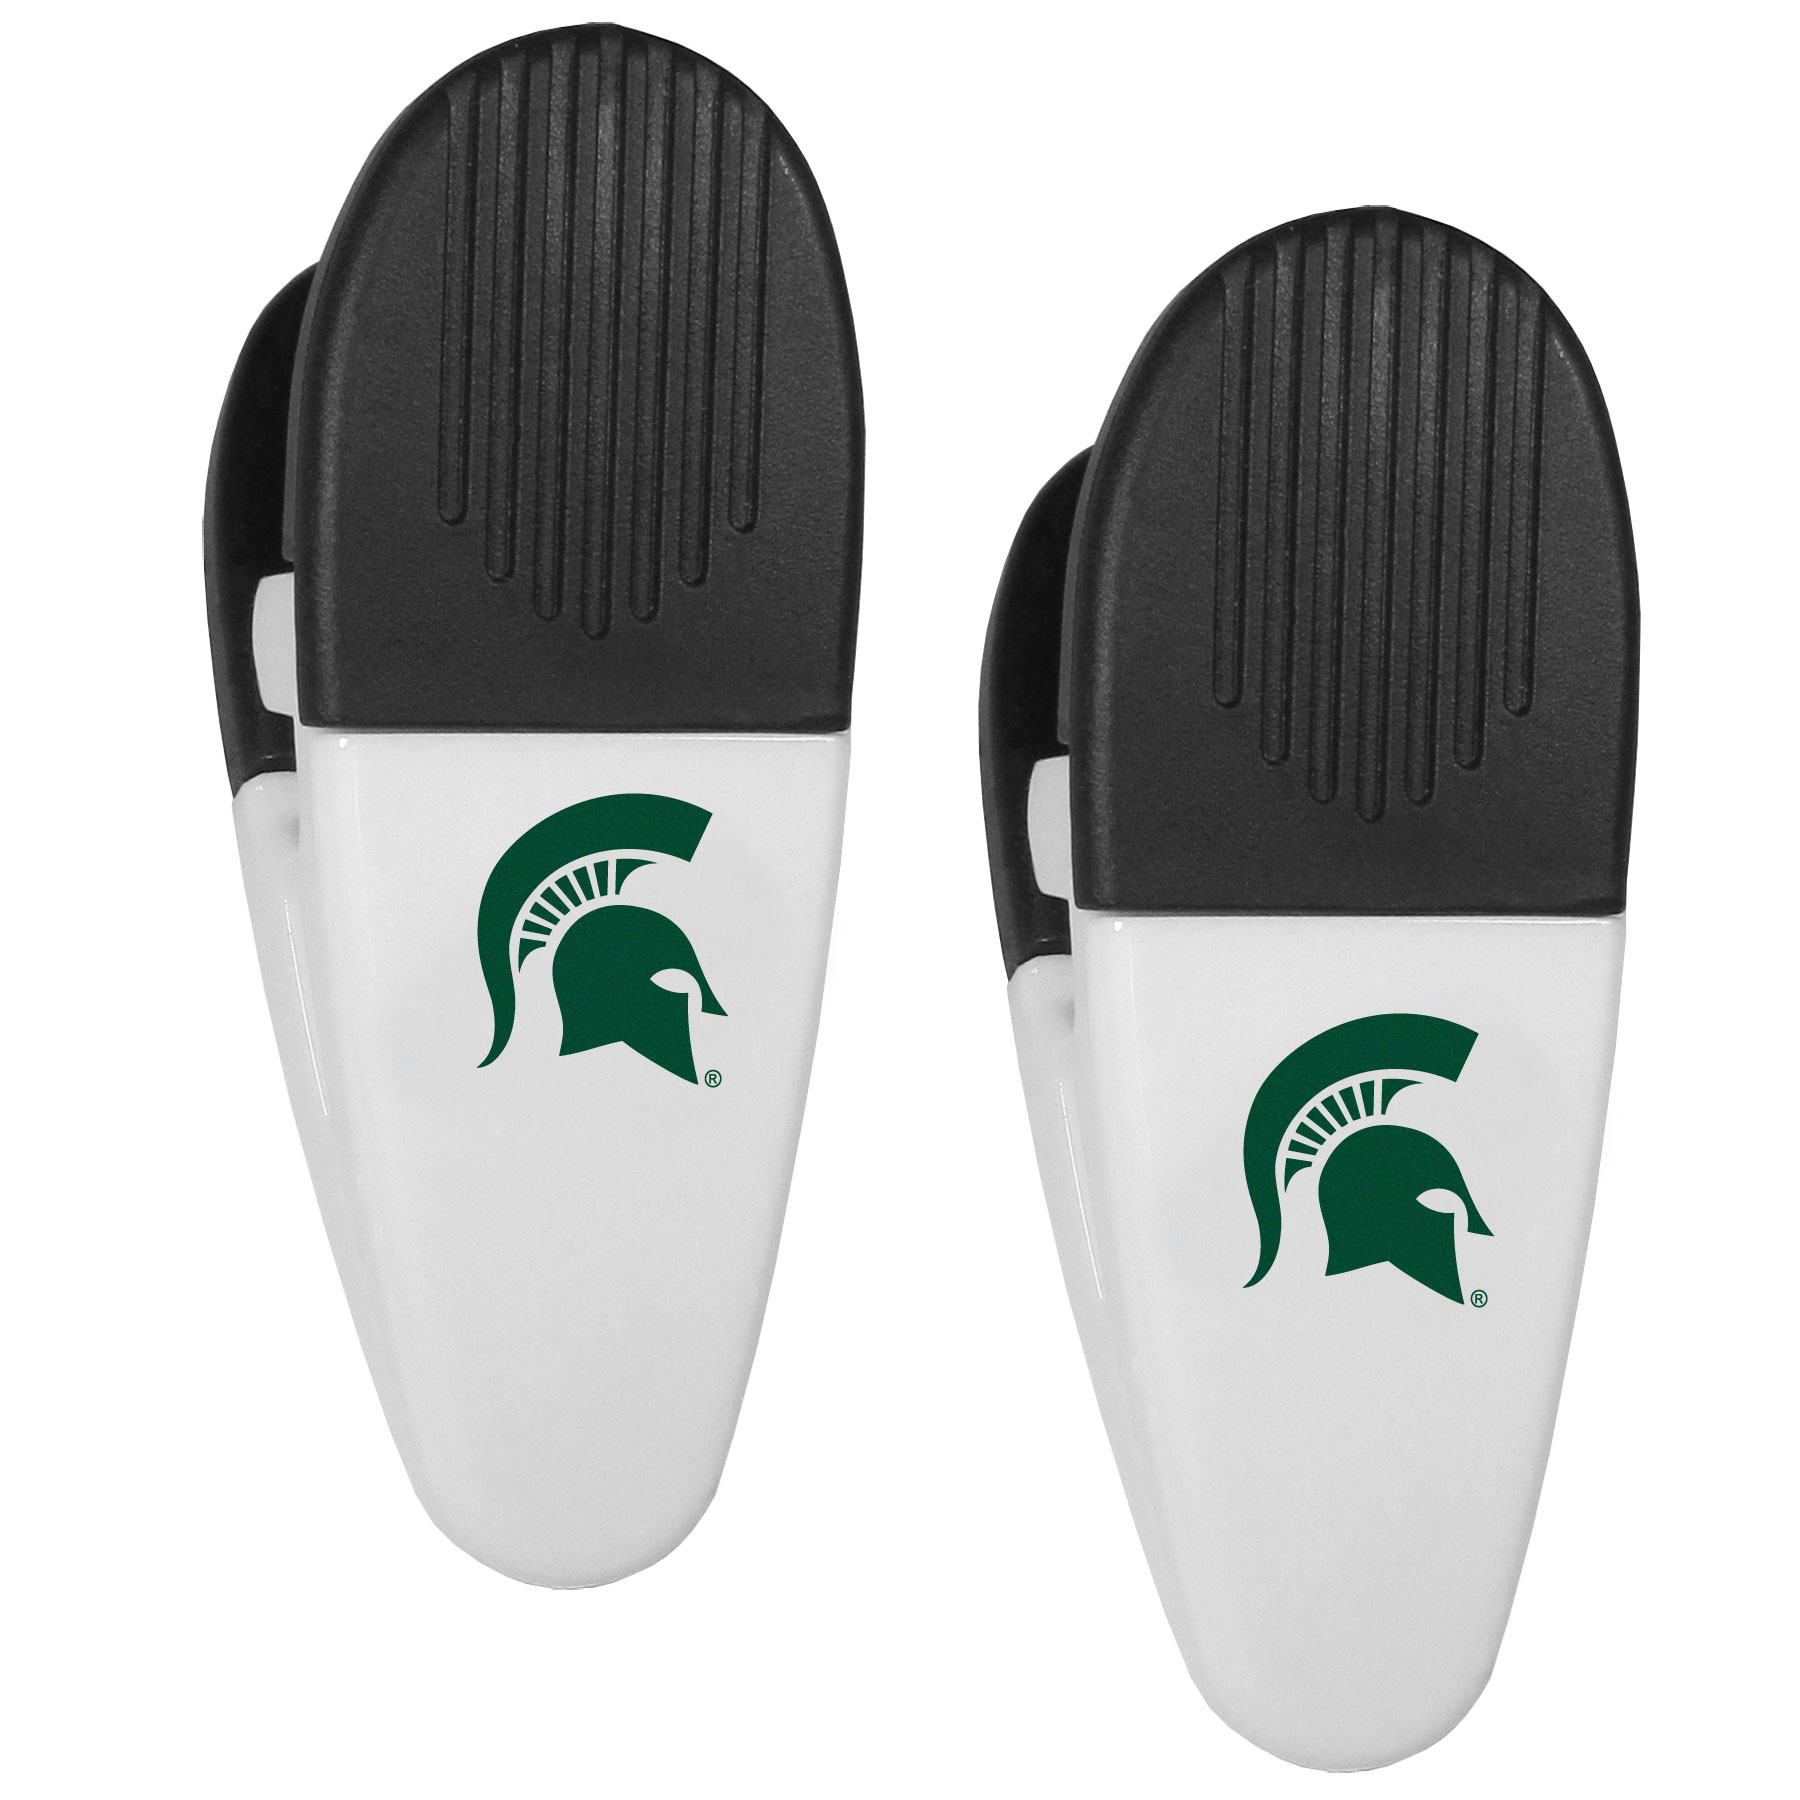 Michigan St. Spartans Mini Chip Clip Magnets, 2 pk - Our Michigan St. Spartans chip clip magnets feature a crisp team logo on the front of the clip. The clip is perfect for sealing chips for freshness and with the powerful magnet on the back it can be used to attach notes to the fridge or hanging your child's artwork. Set of 2 magnet clips, each clip is 3.5 inches tall and 1.25 inch wide.